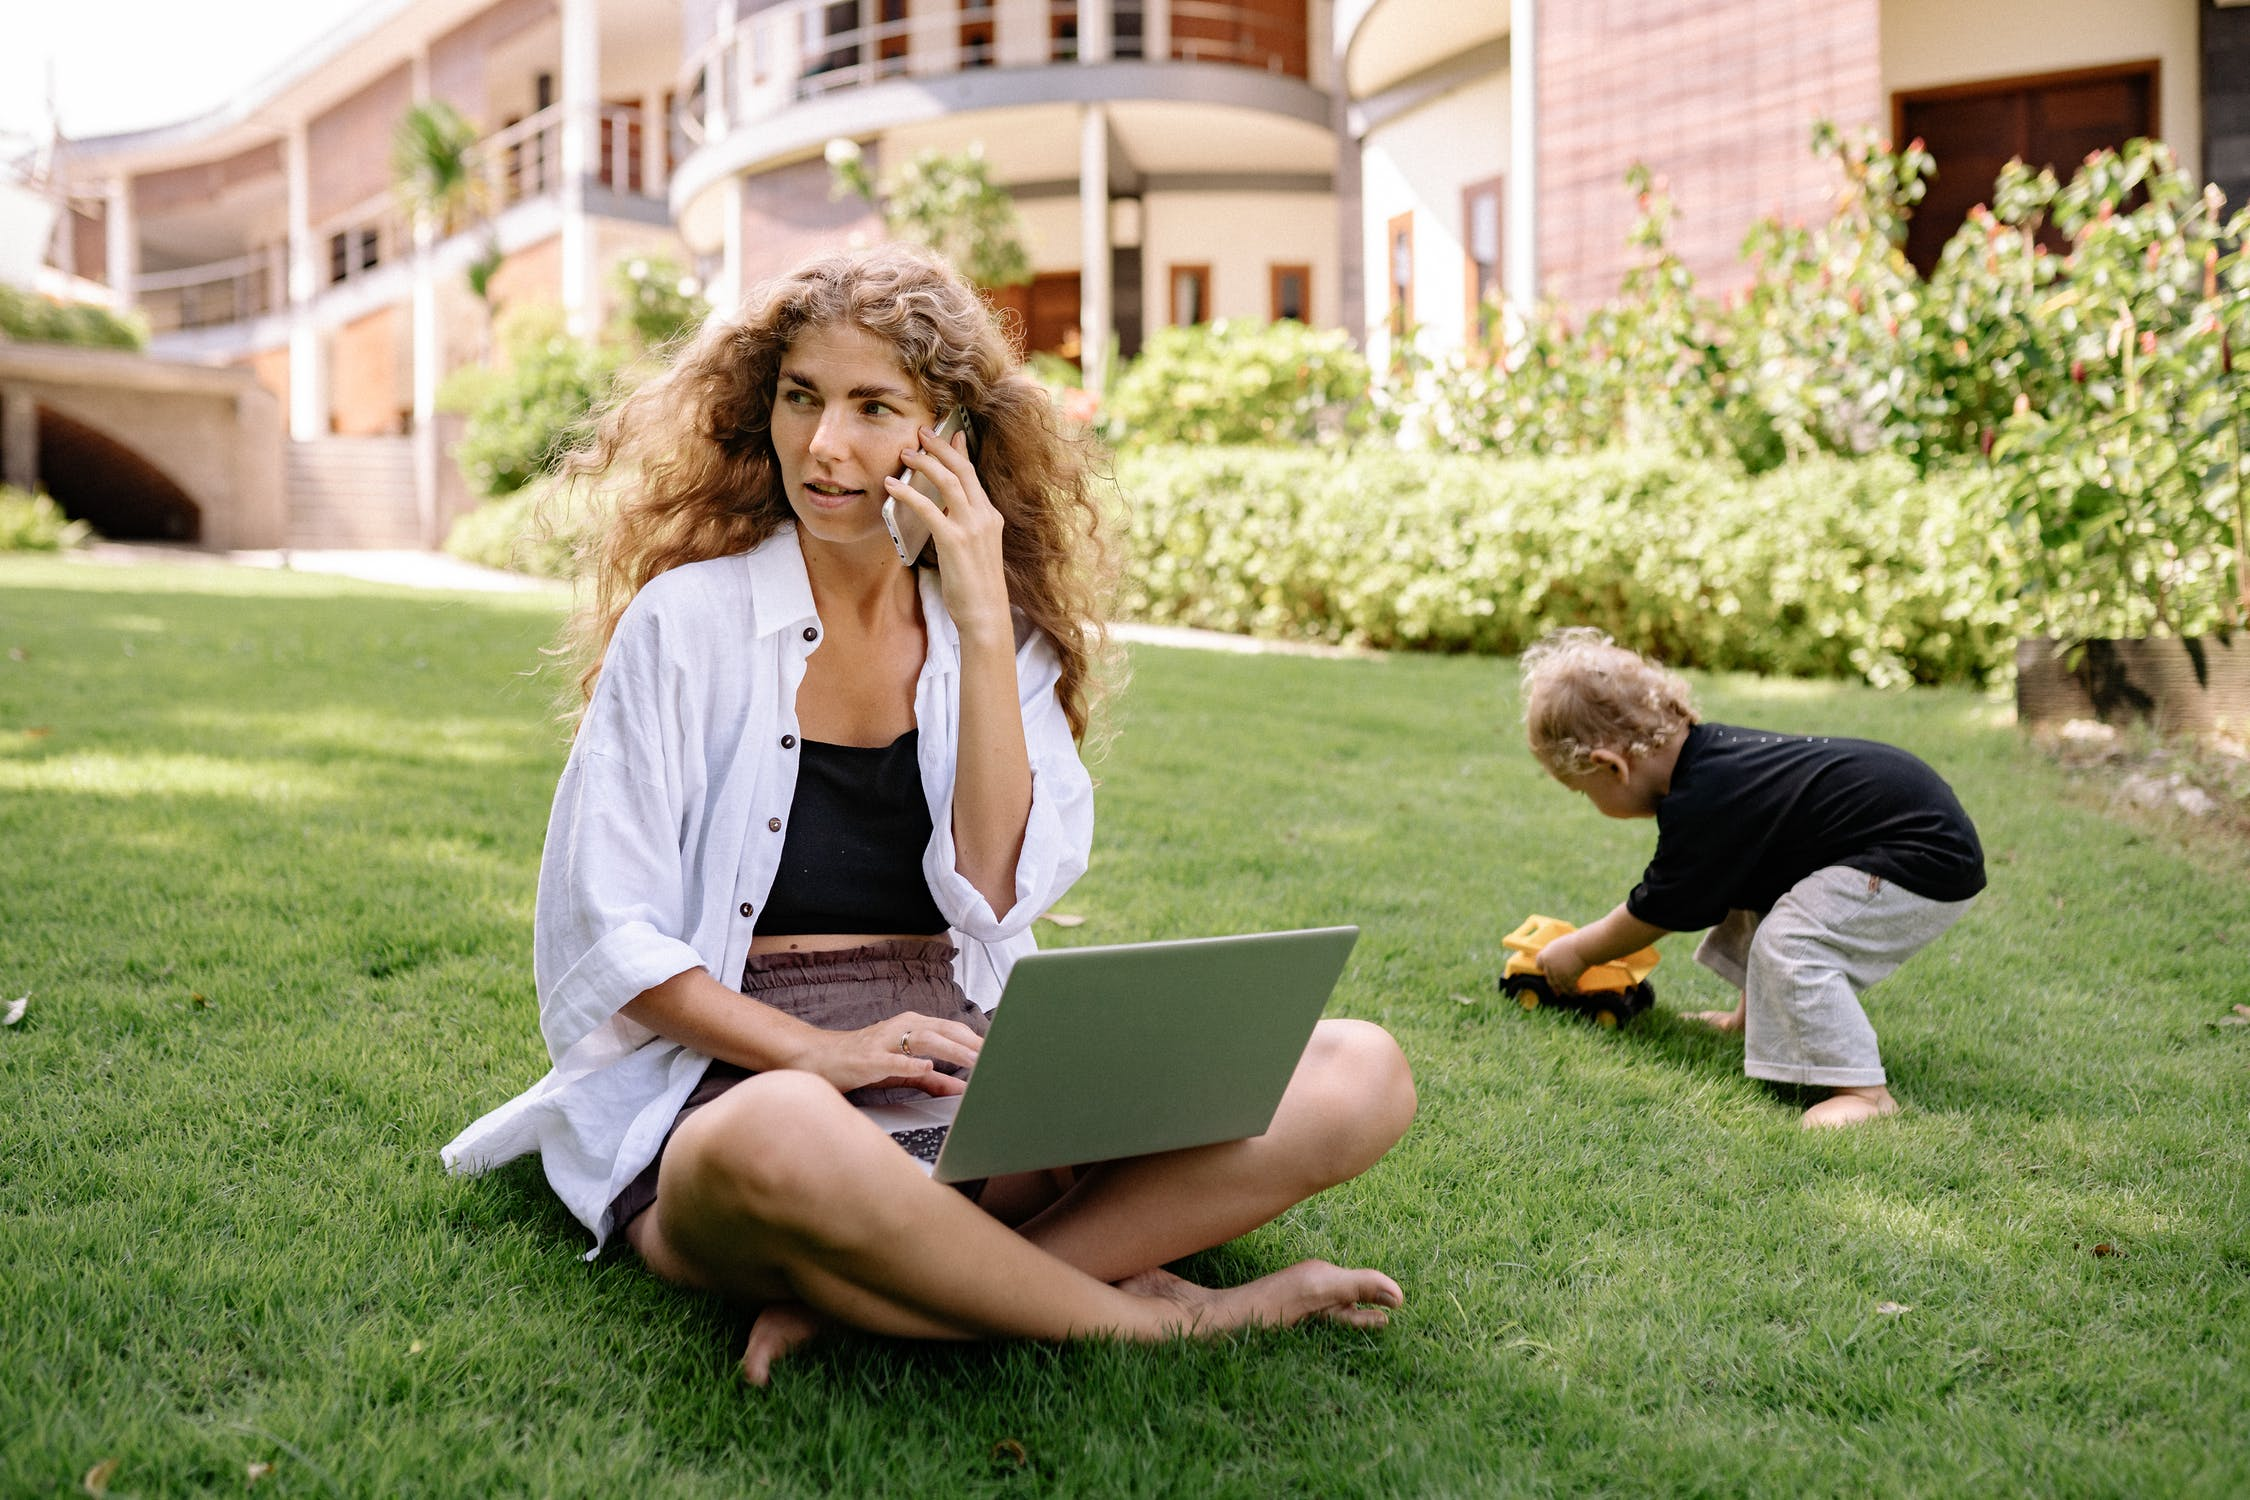 Woman sitting with her son on a lawn. She has a laptop in her lap and she is on the phone looking around her in a concerned way.